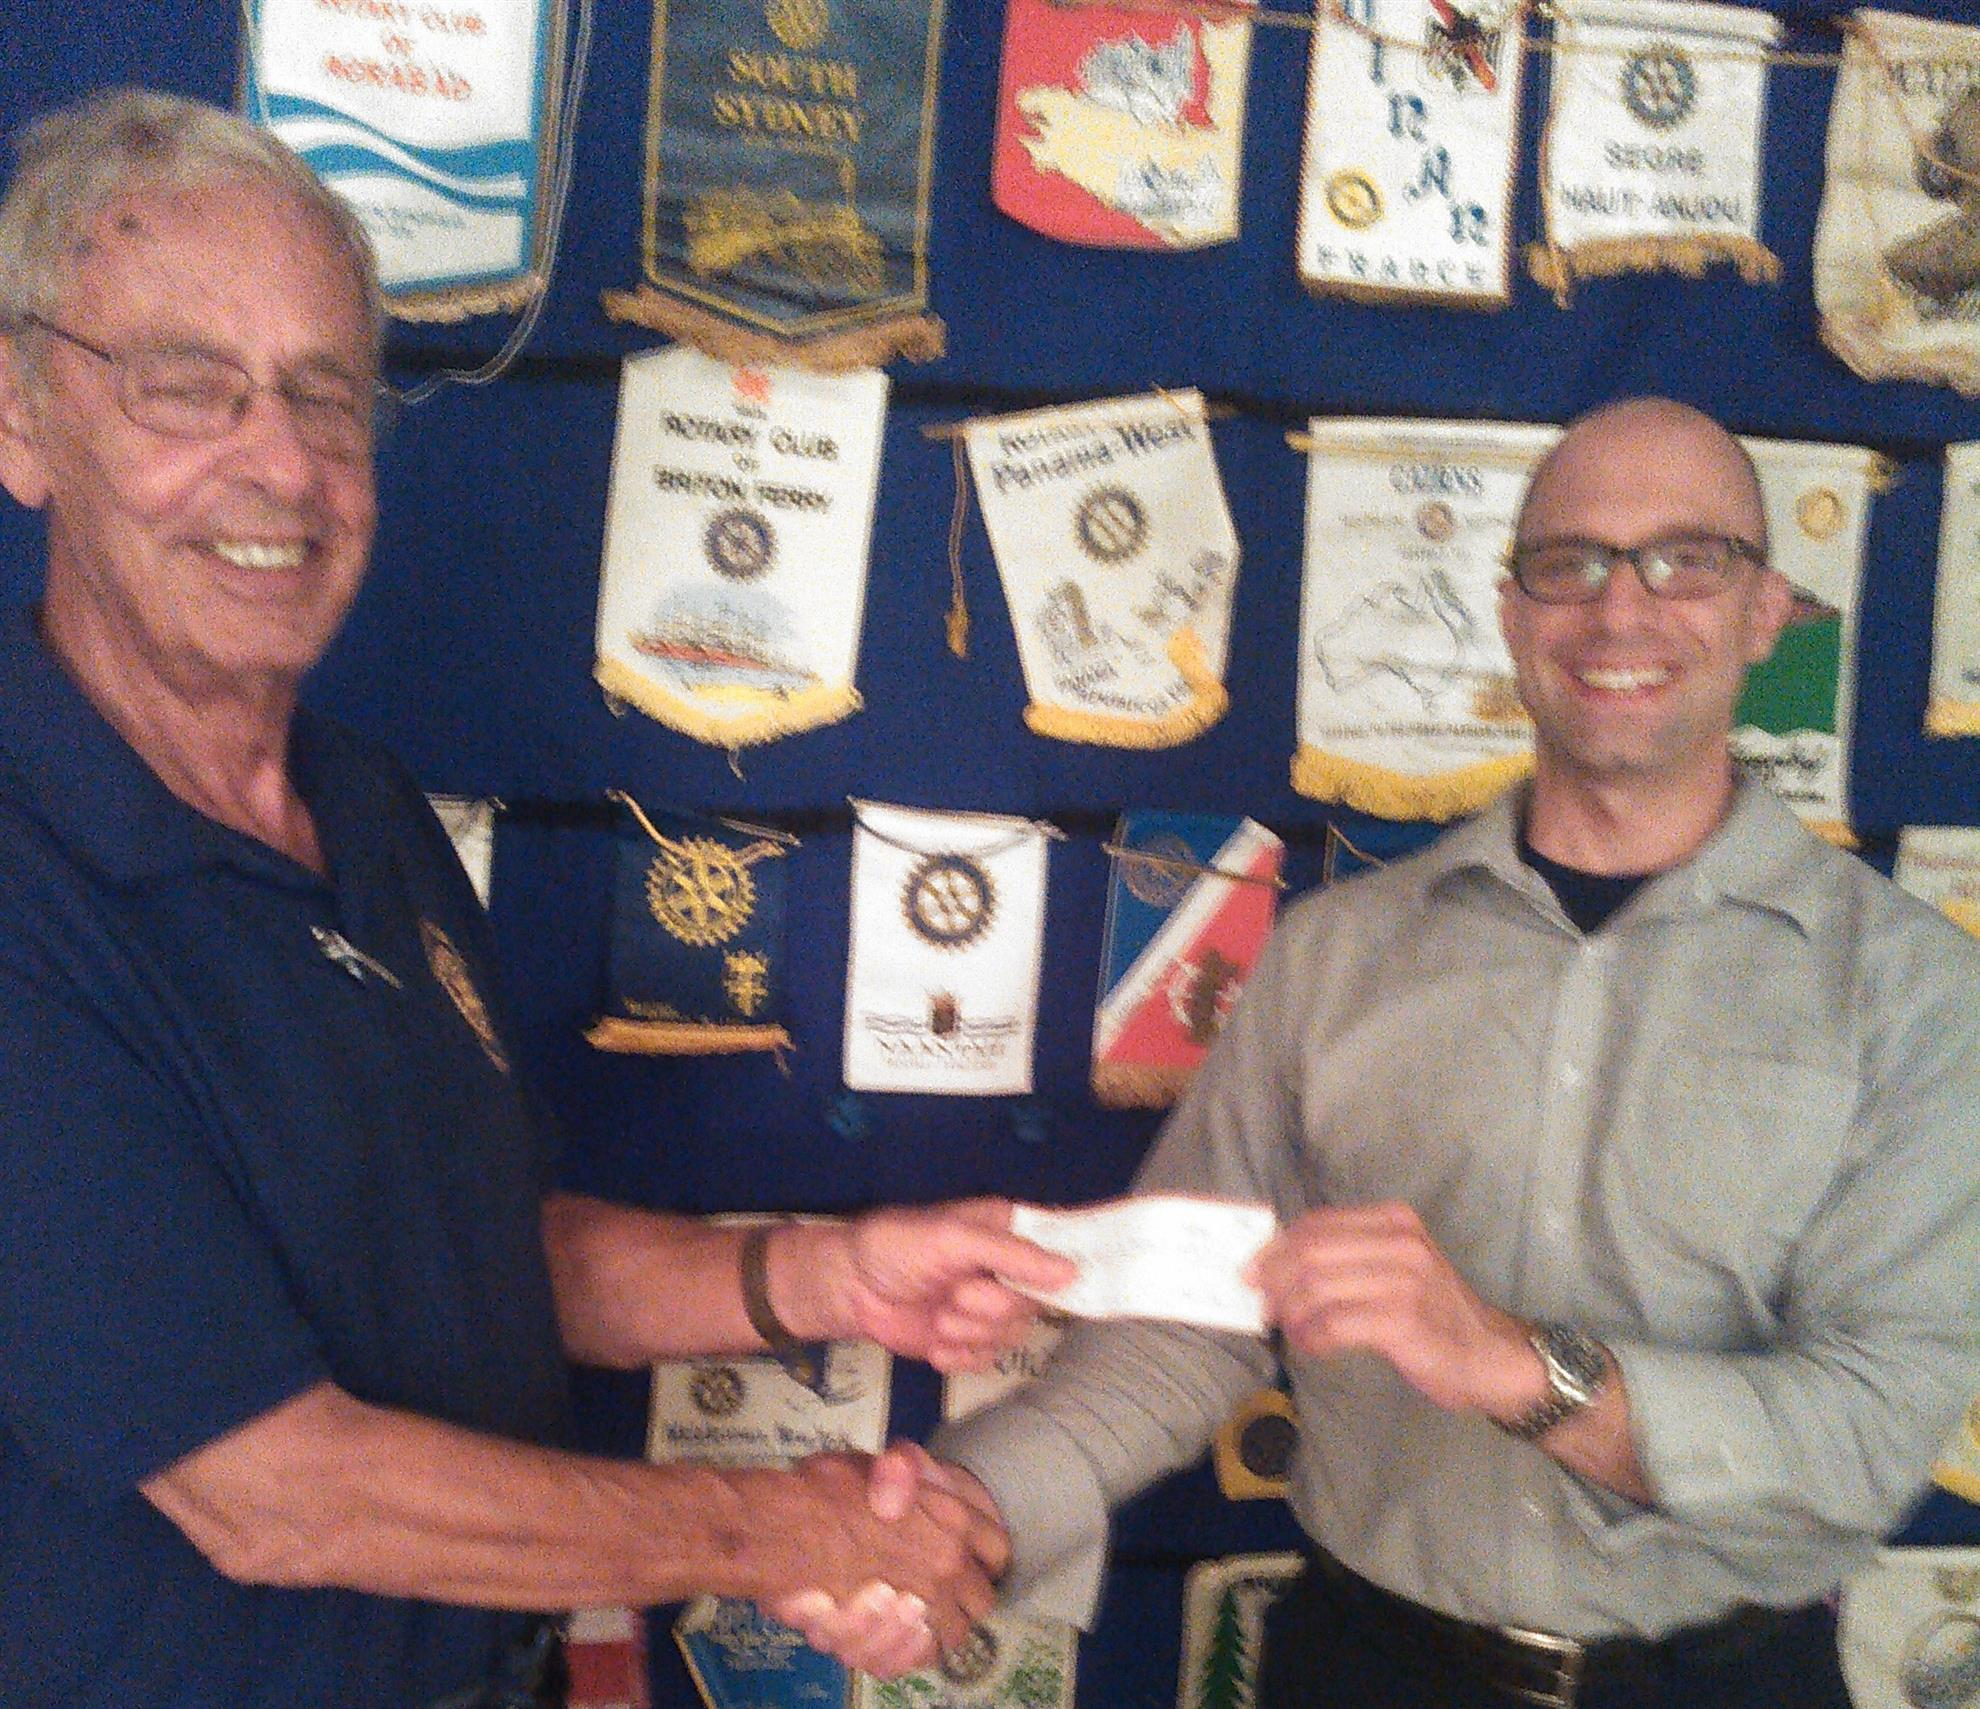 8/13/18 - Ken presents Mark Thabet a $300 check for the Child Care Council of Orange County